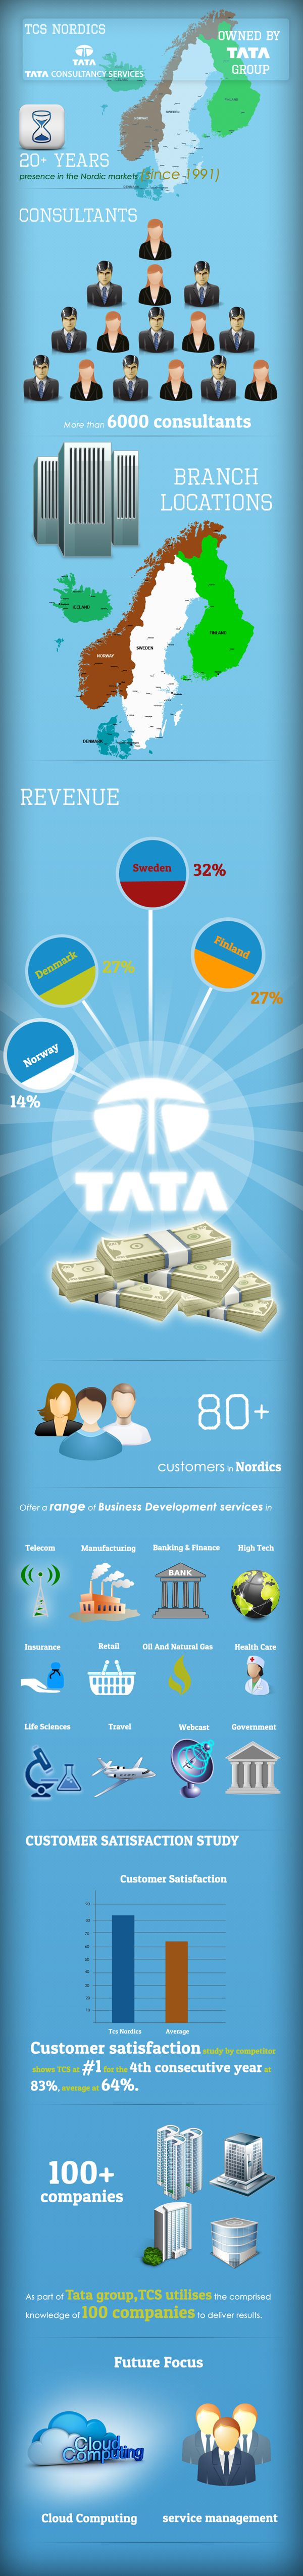 This infographic is done for Tata Consultancy Services Nordic Ltd